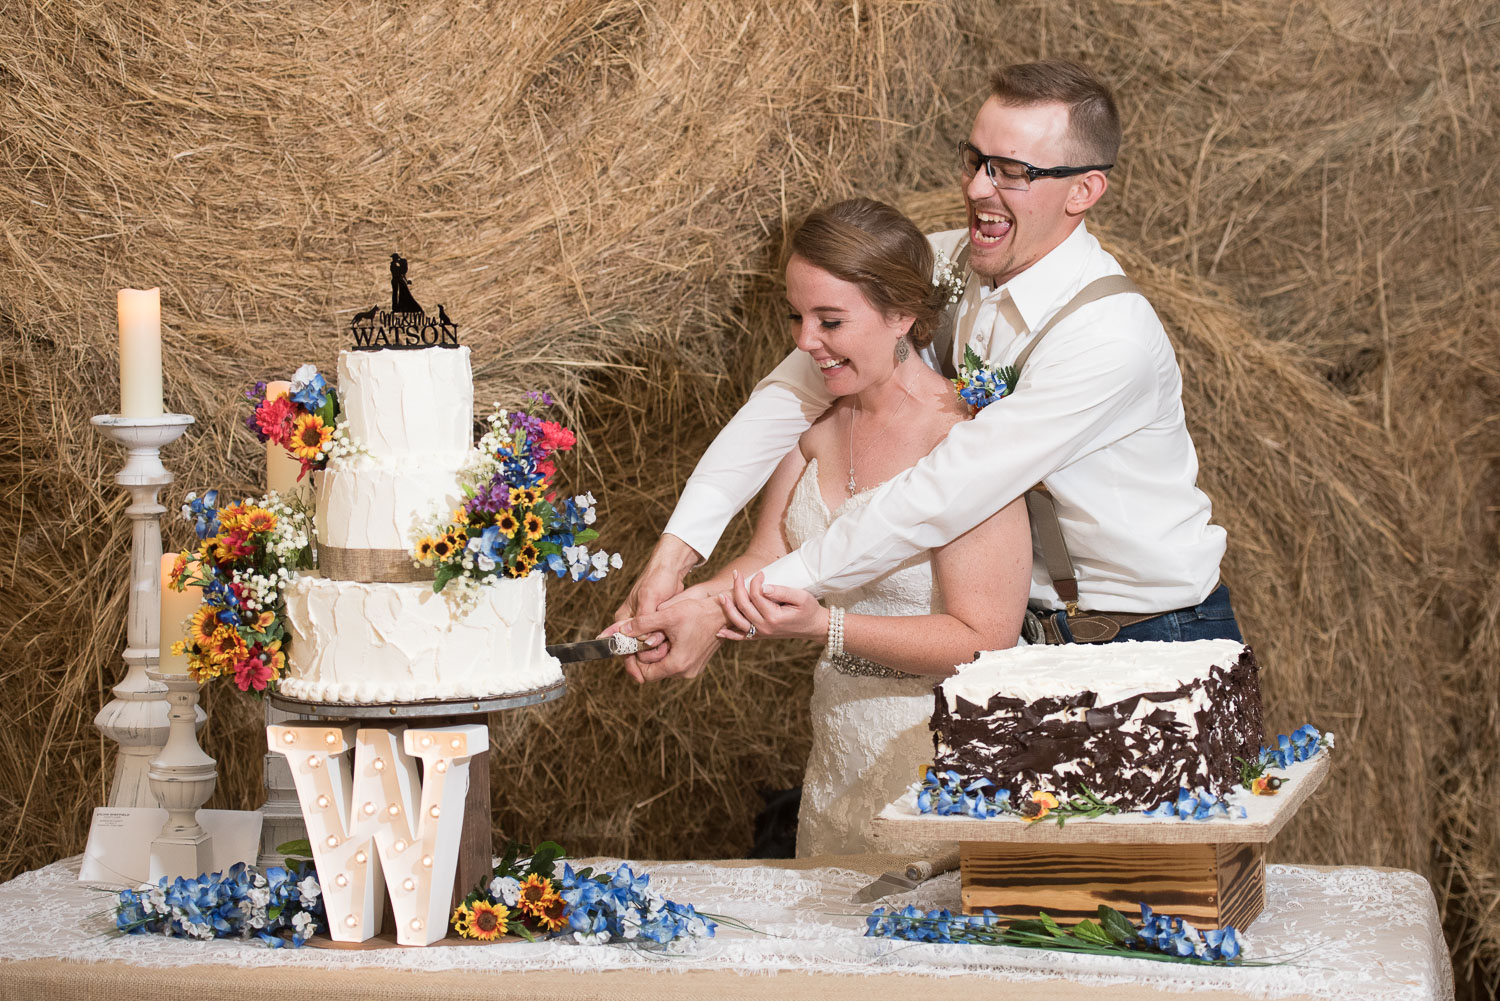 117 cutting two tier cake at wedding.jpg